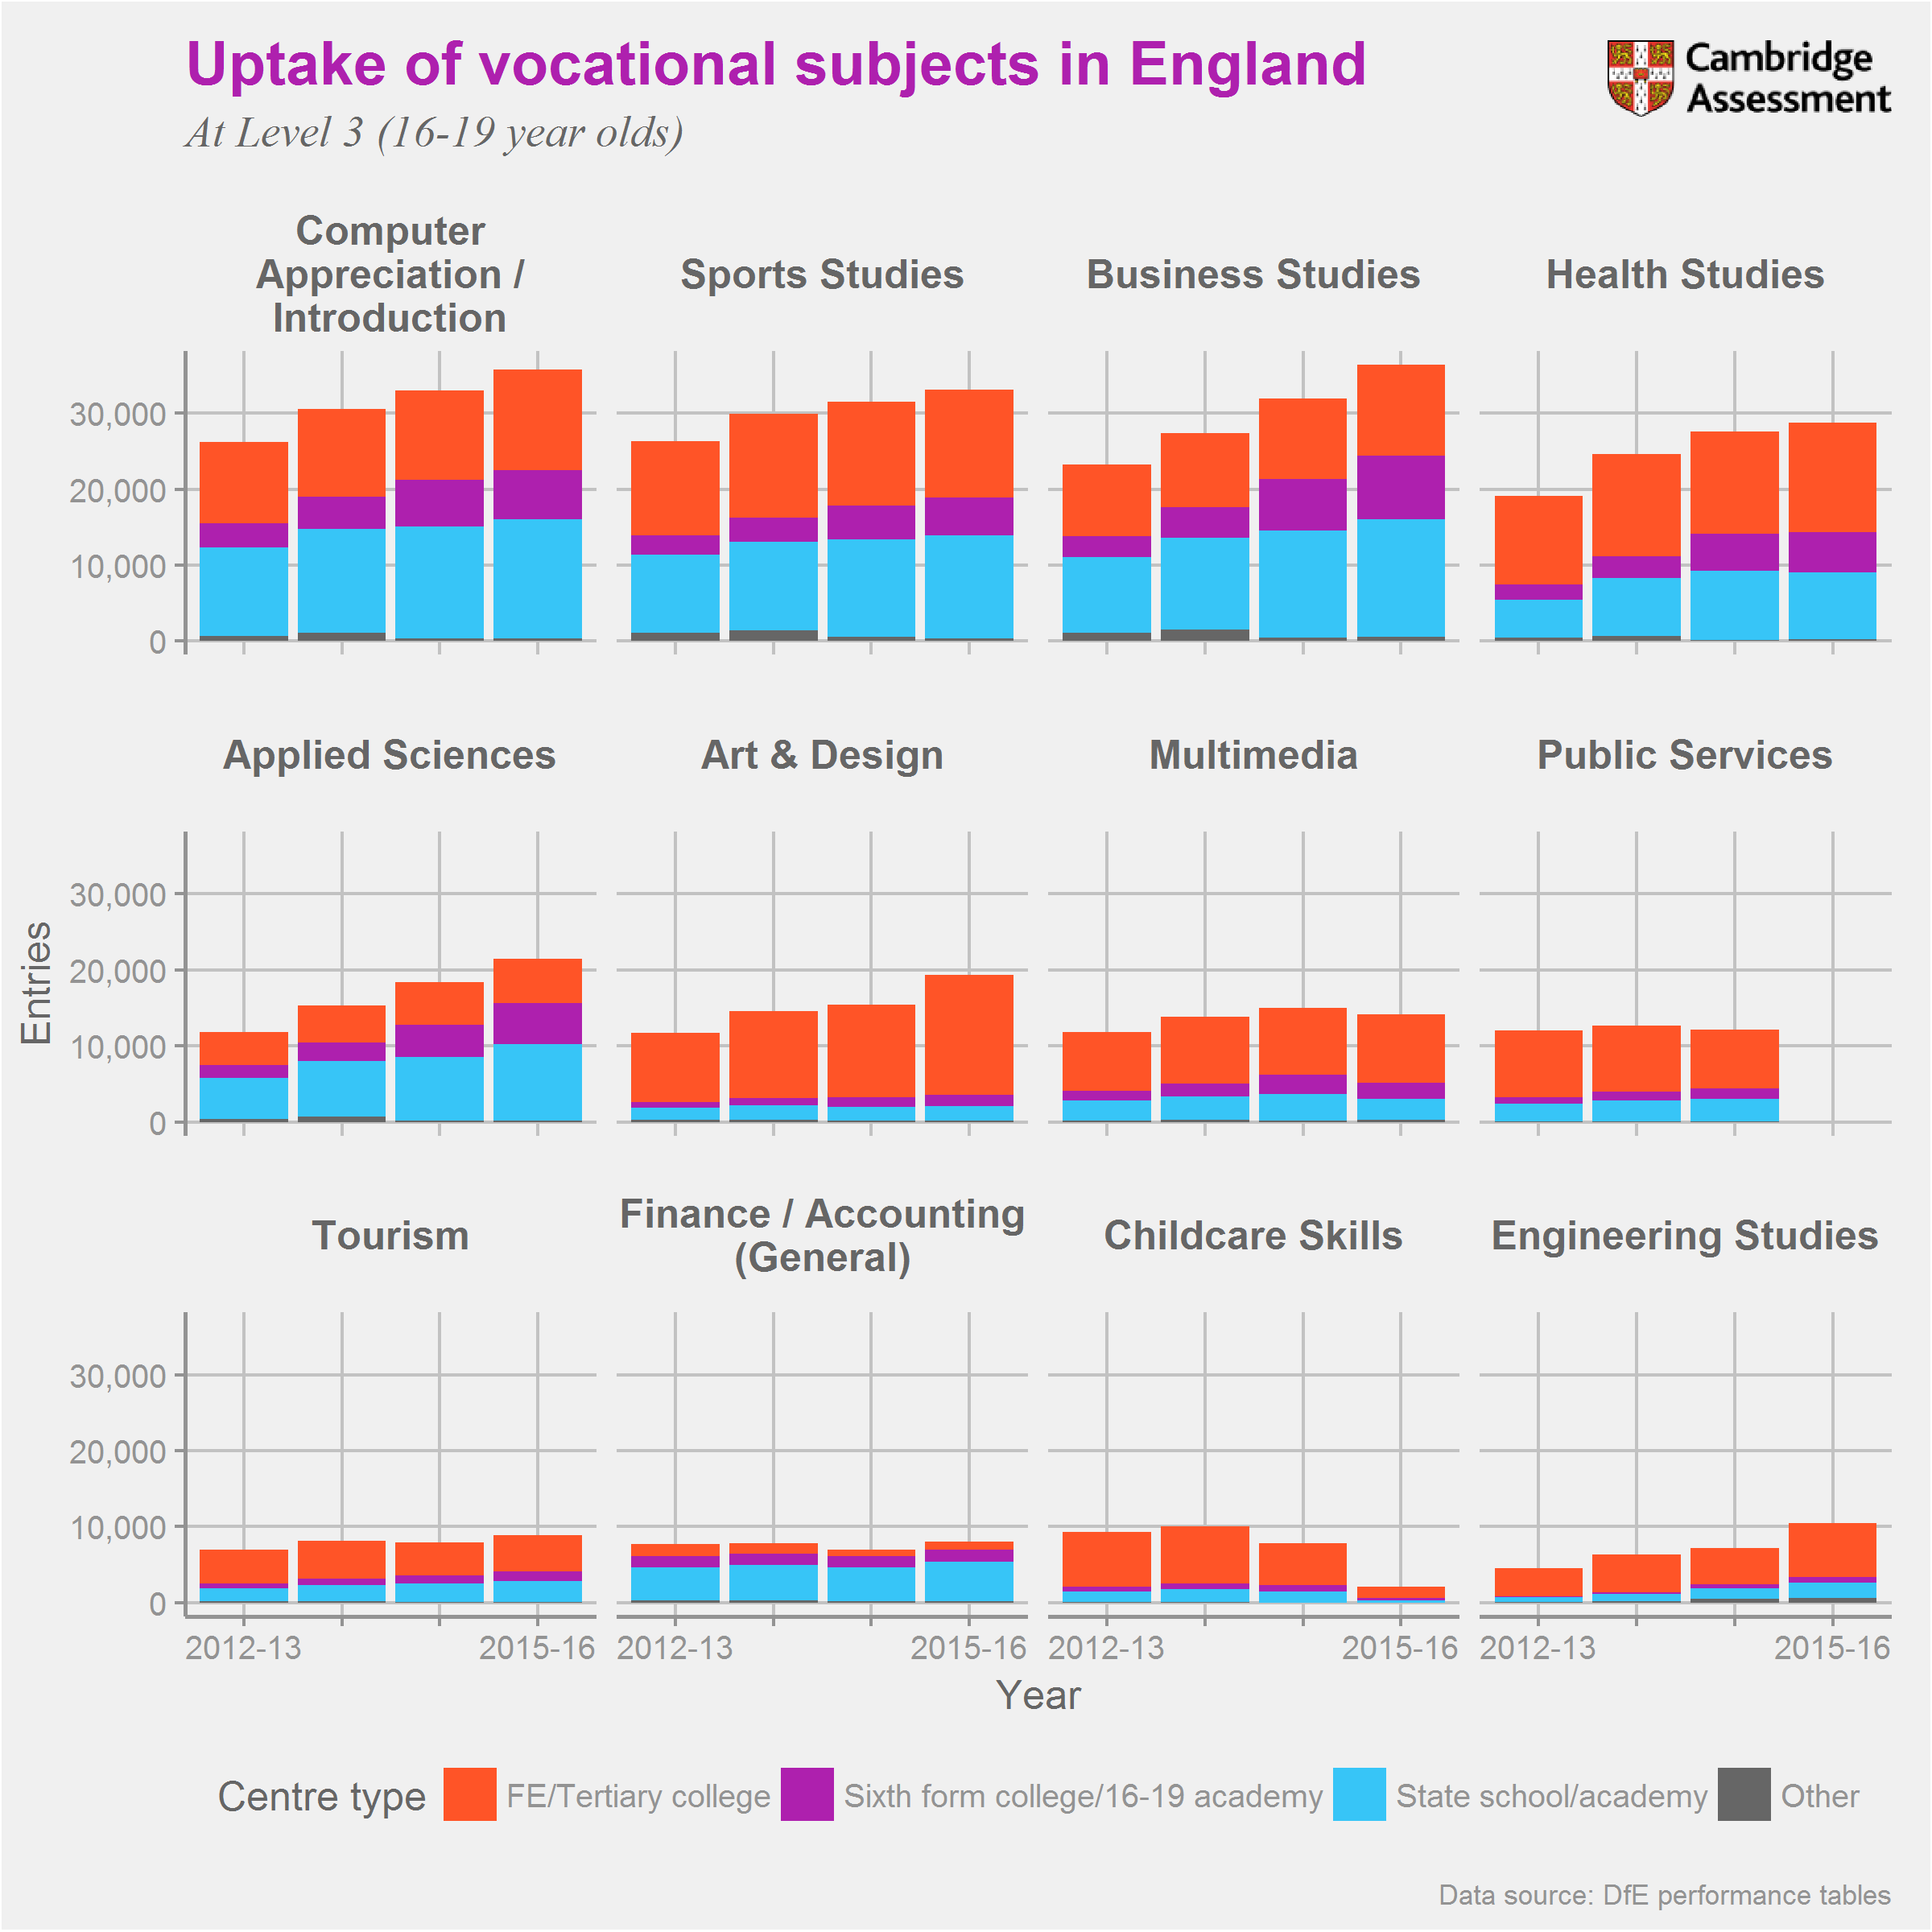 Graph of popularity of Level 3 vocational subjects in England by centre type